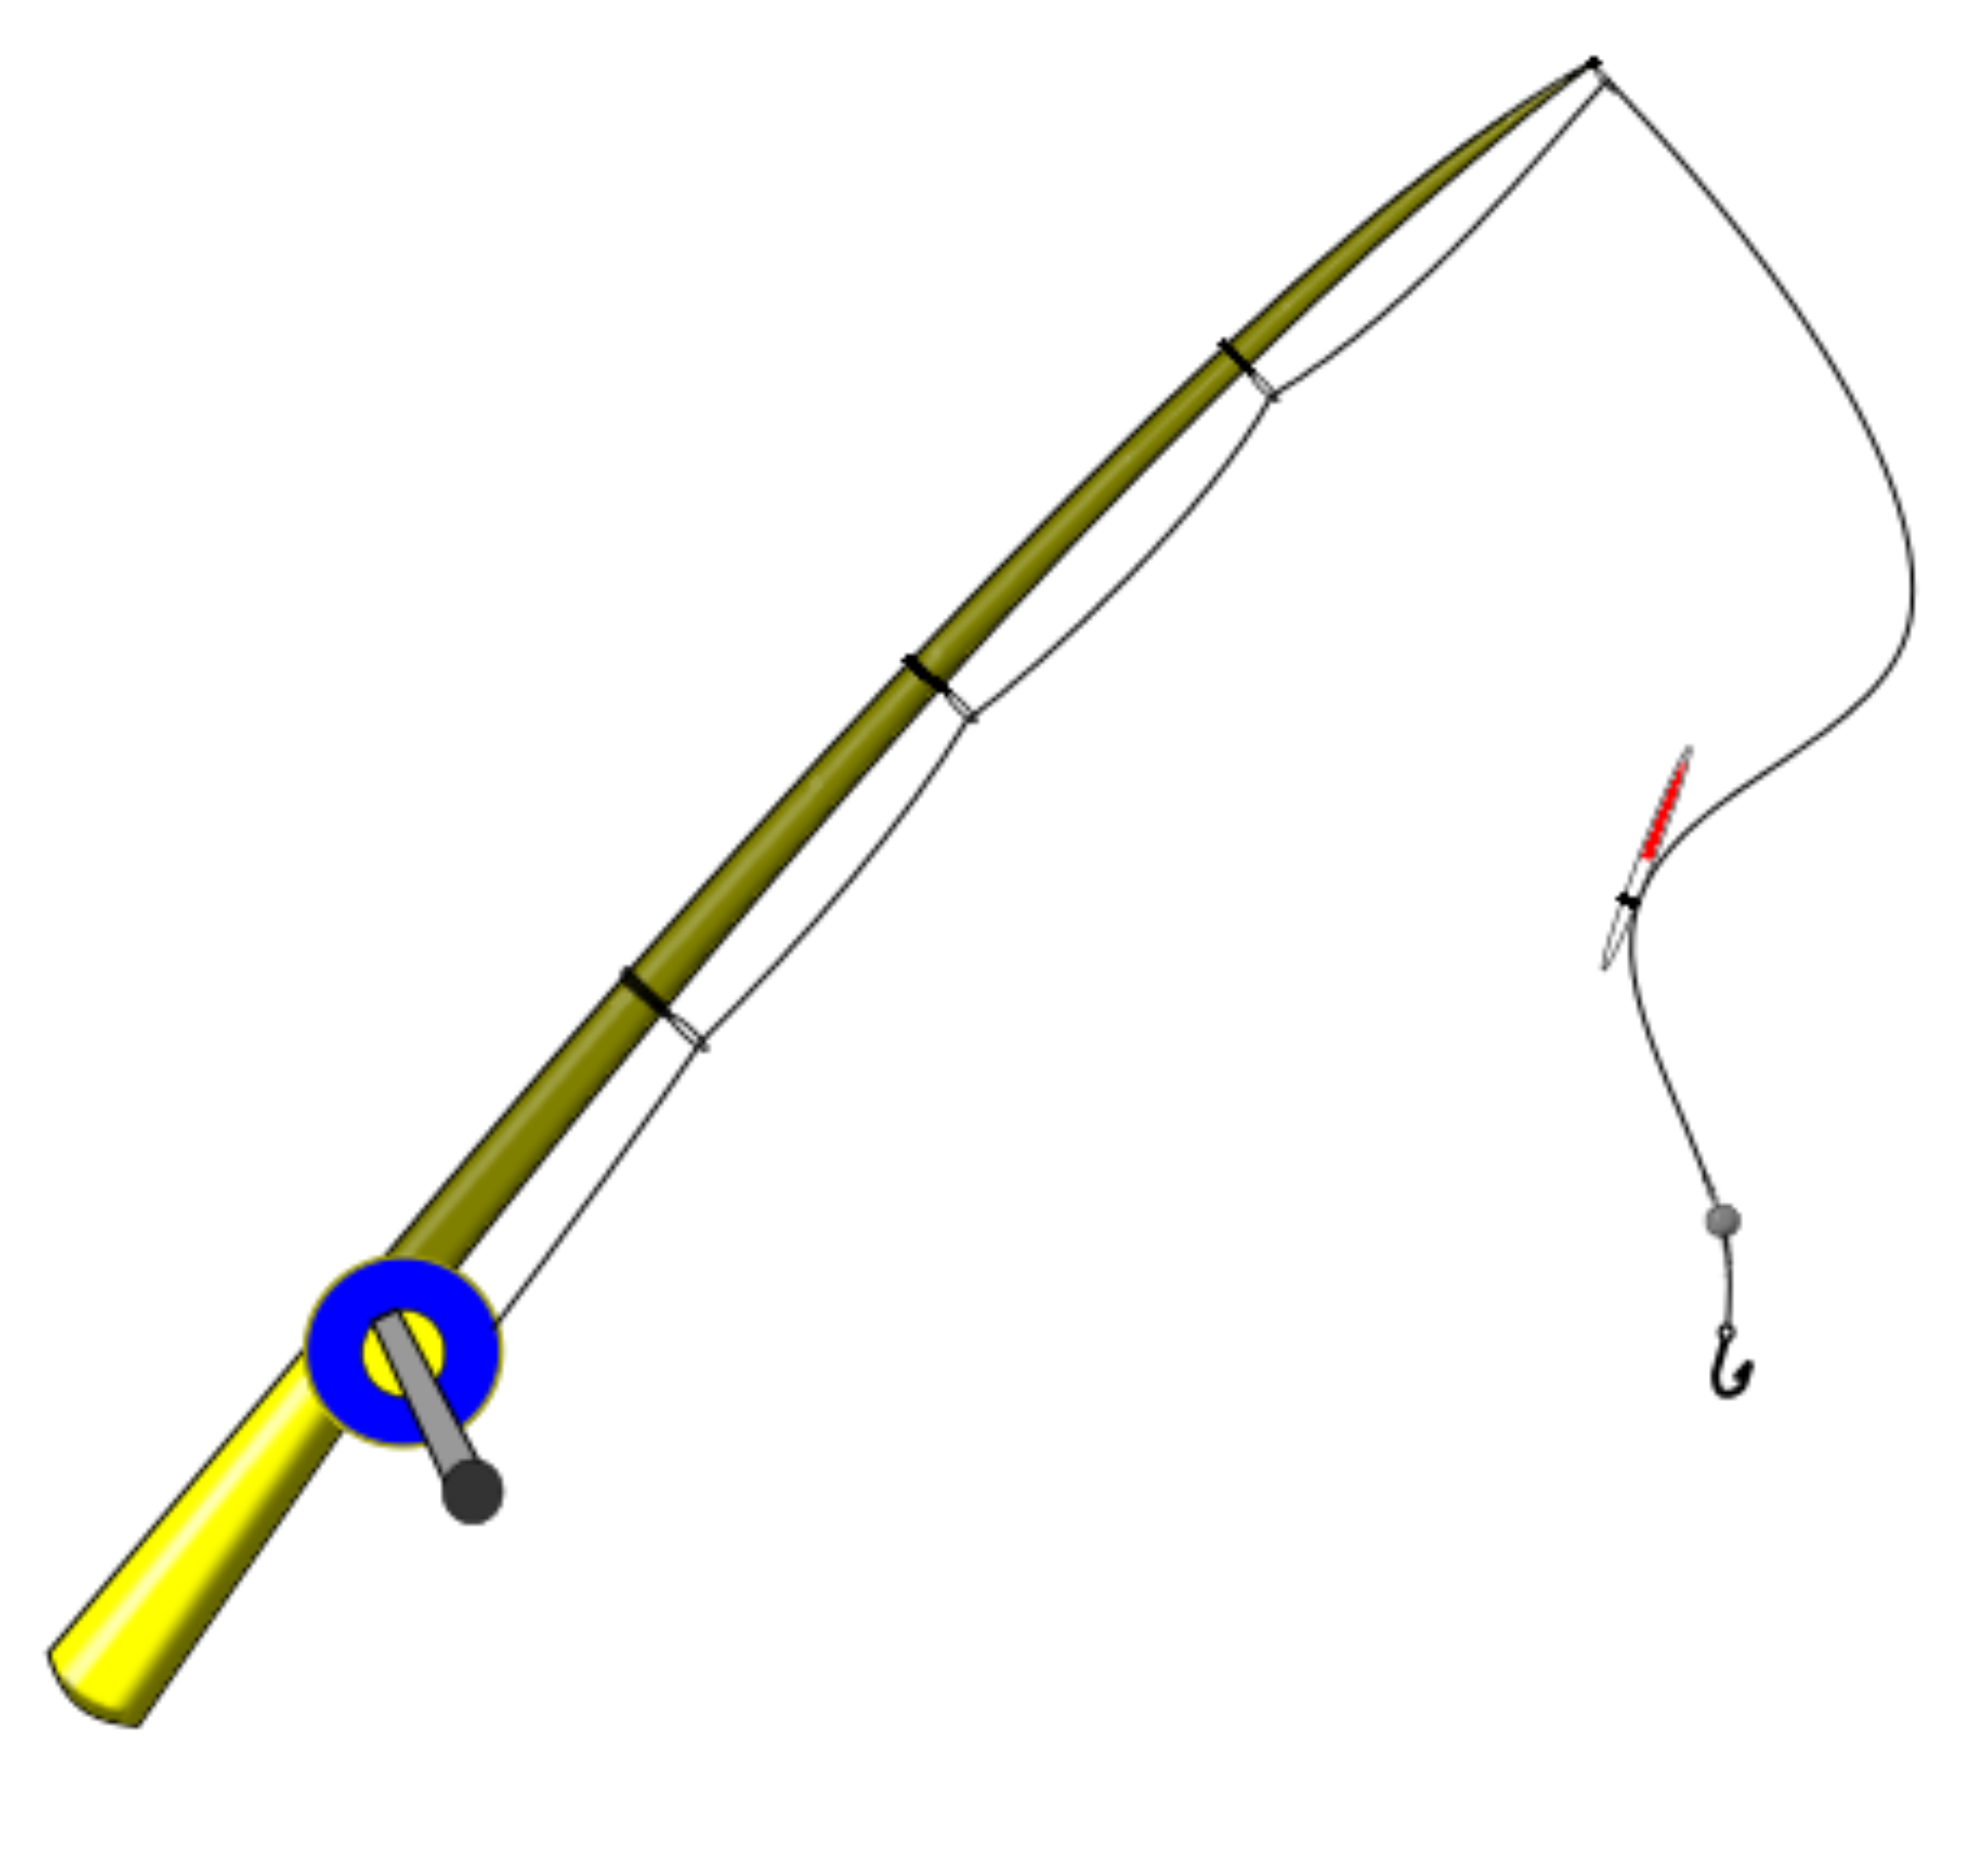 2400x2254 Fishing Pole Clipart Fishing Rod Image 2